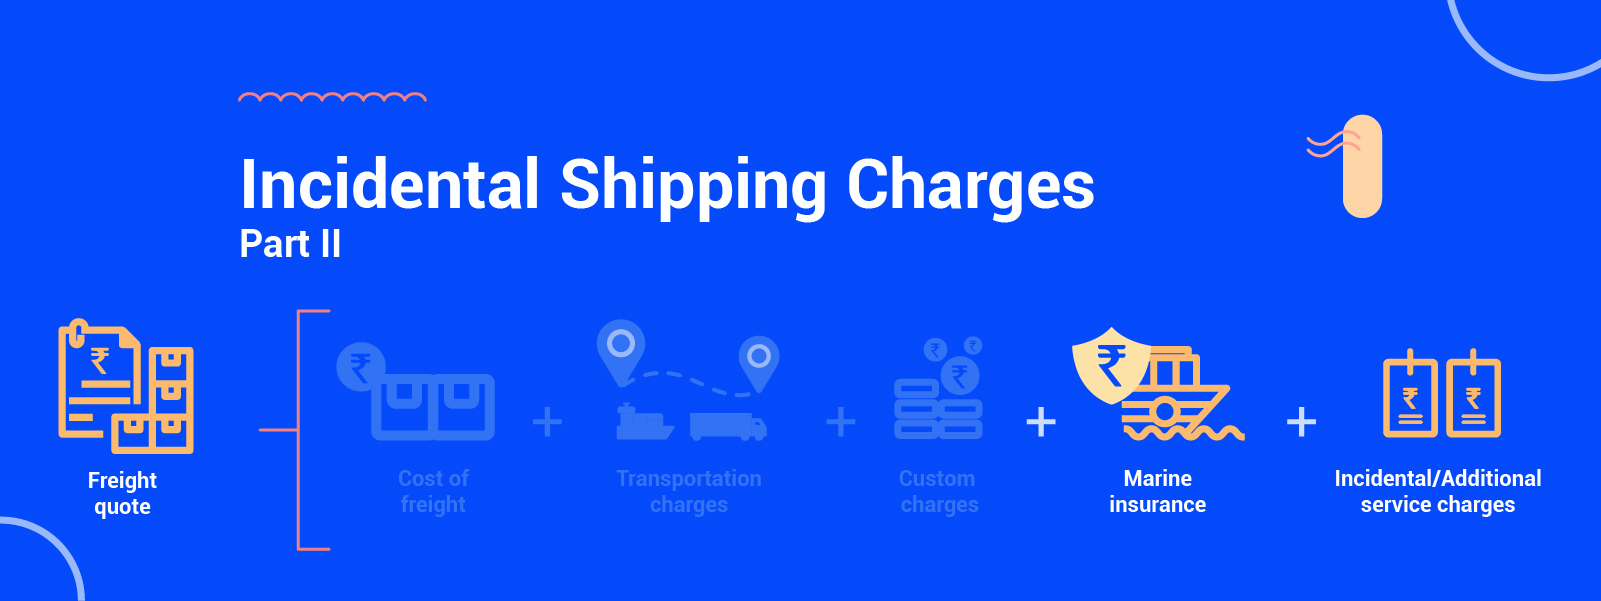 Incidental Shipping Charges Part II: Transport & Insurance-related Extra Costs